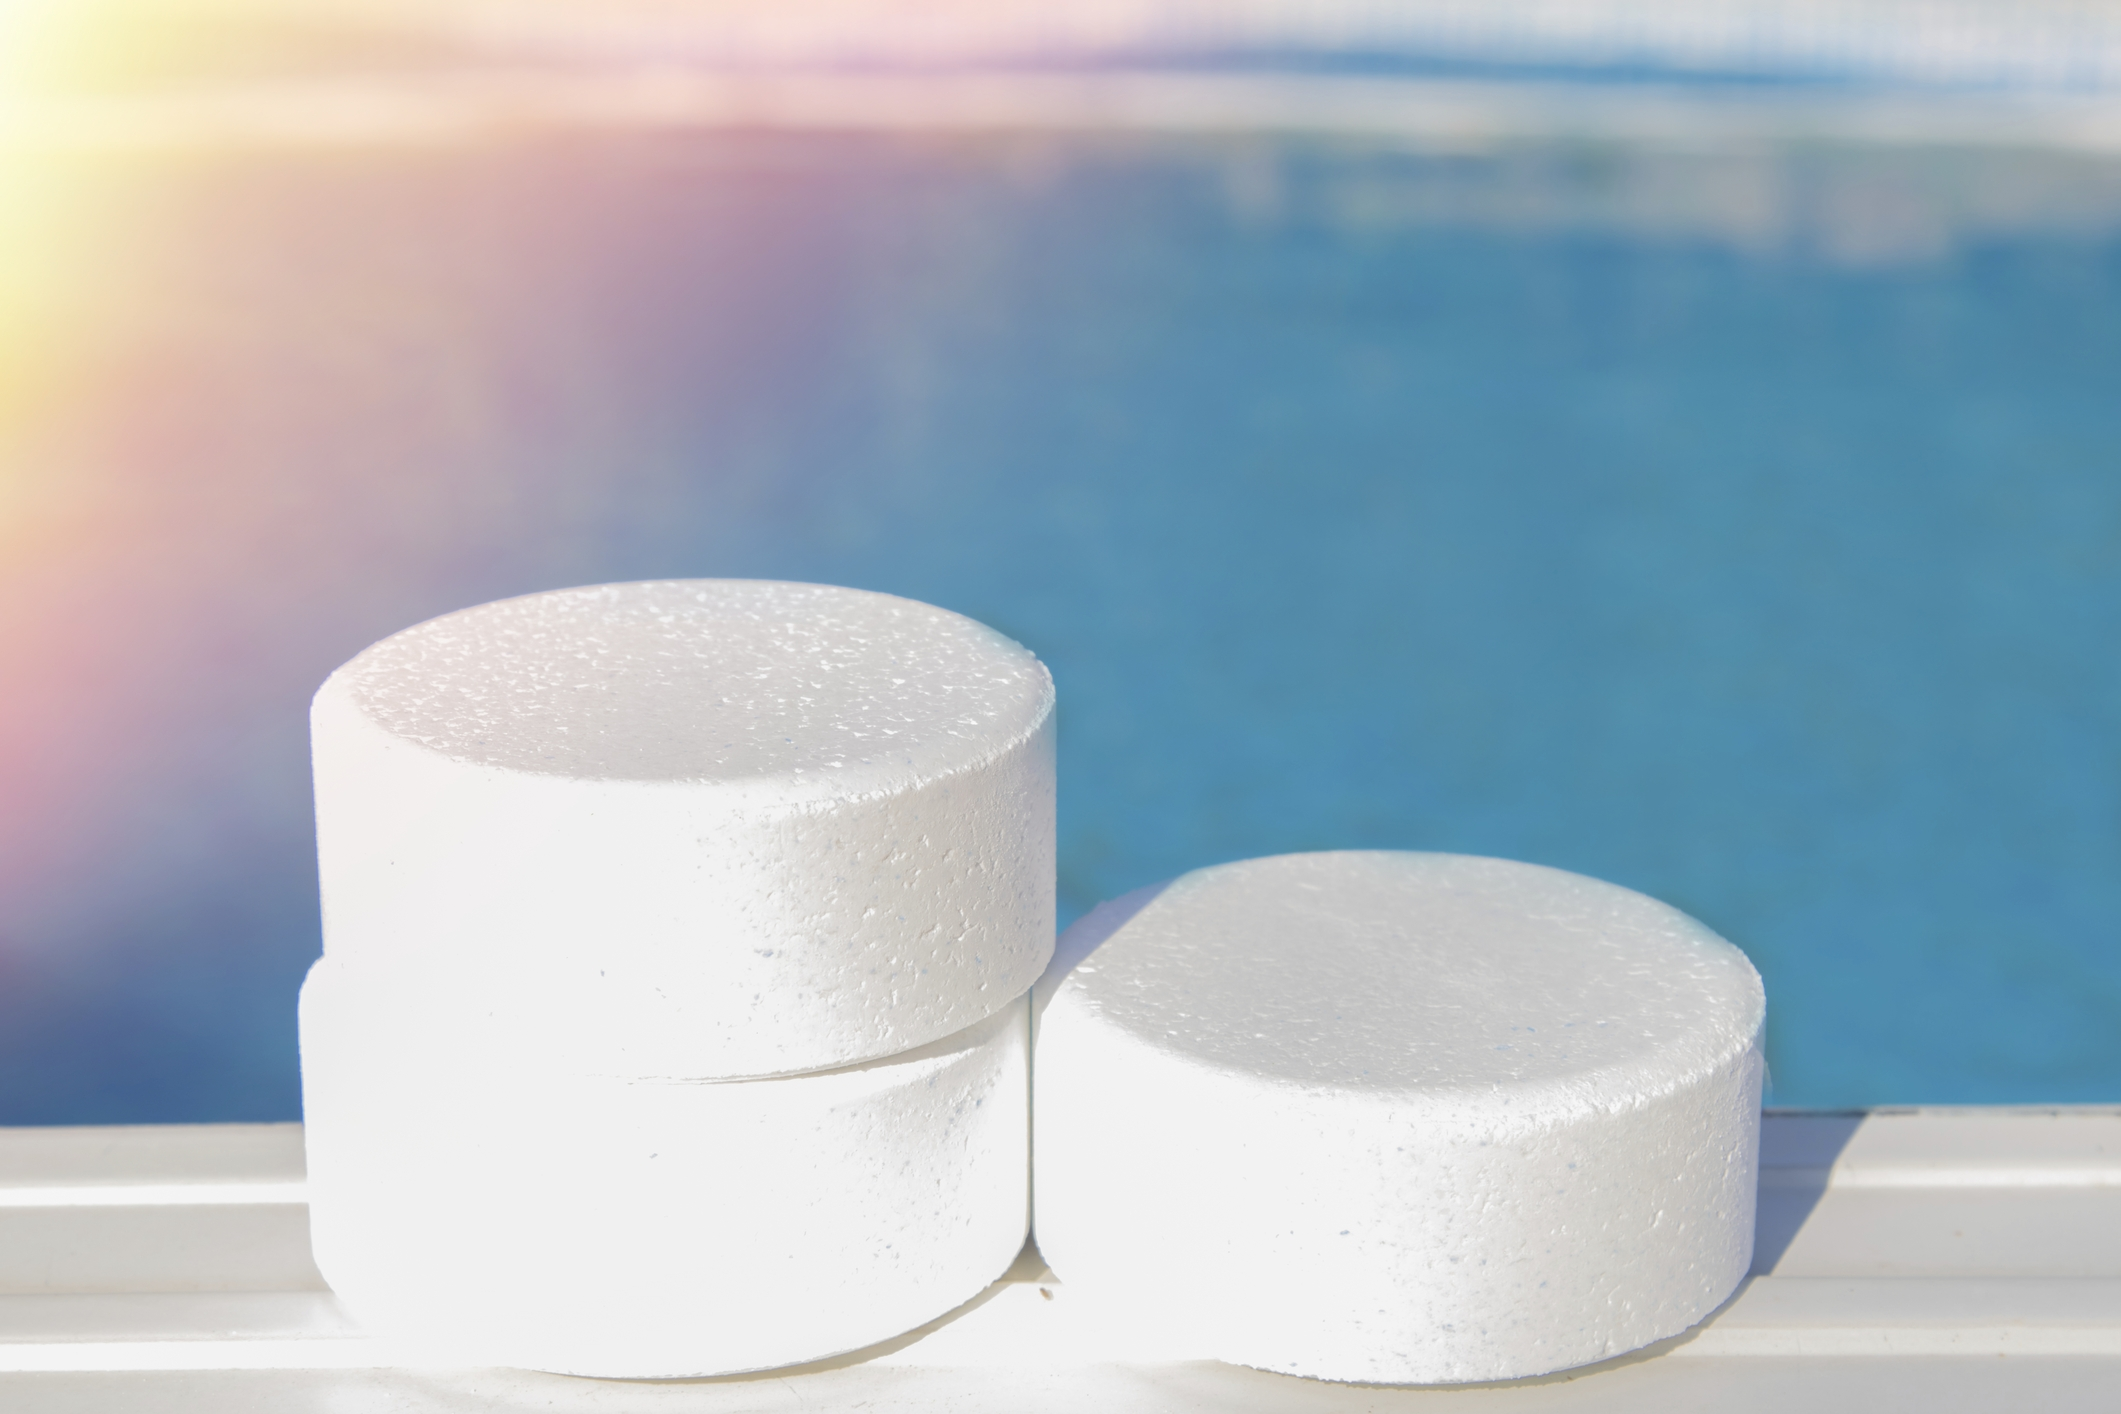 5 Ways to Save Your Pool Chlorine this Summer